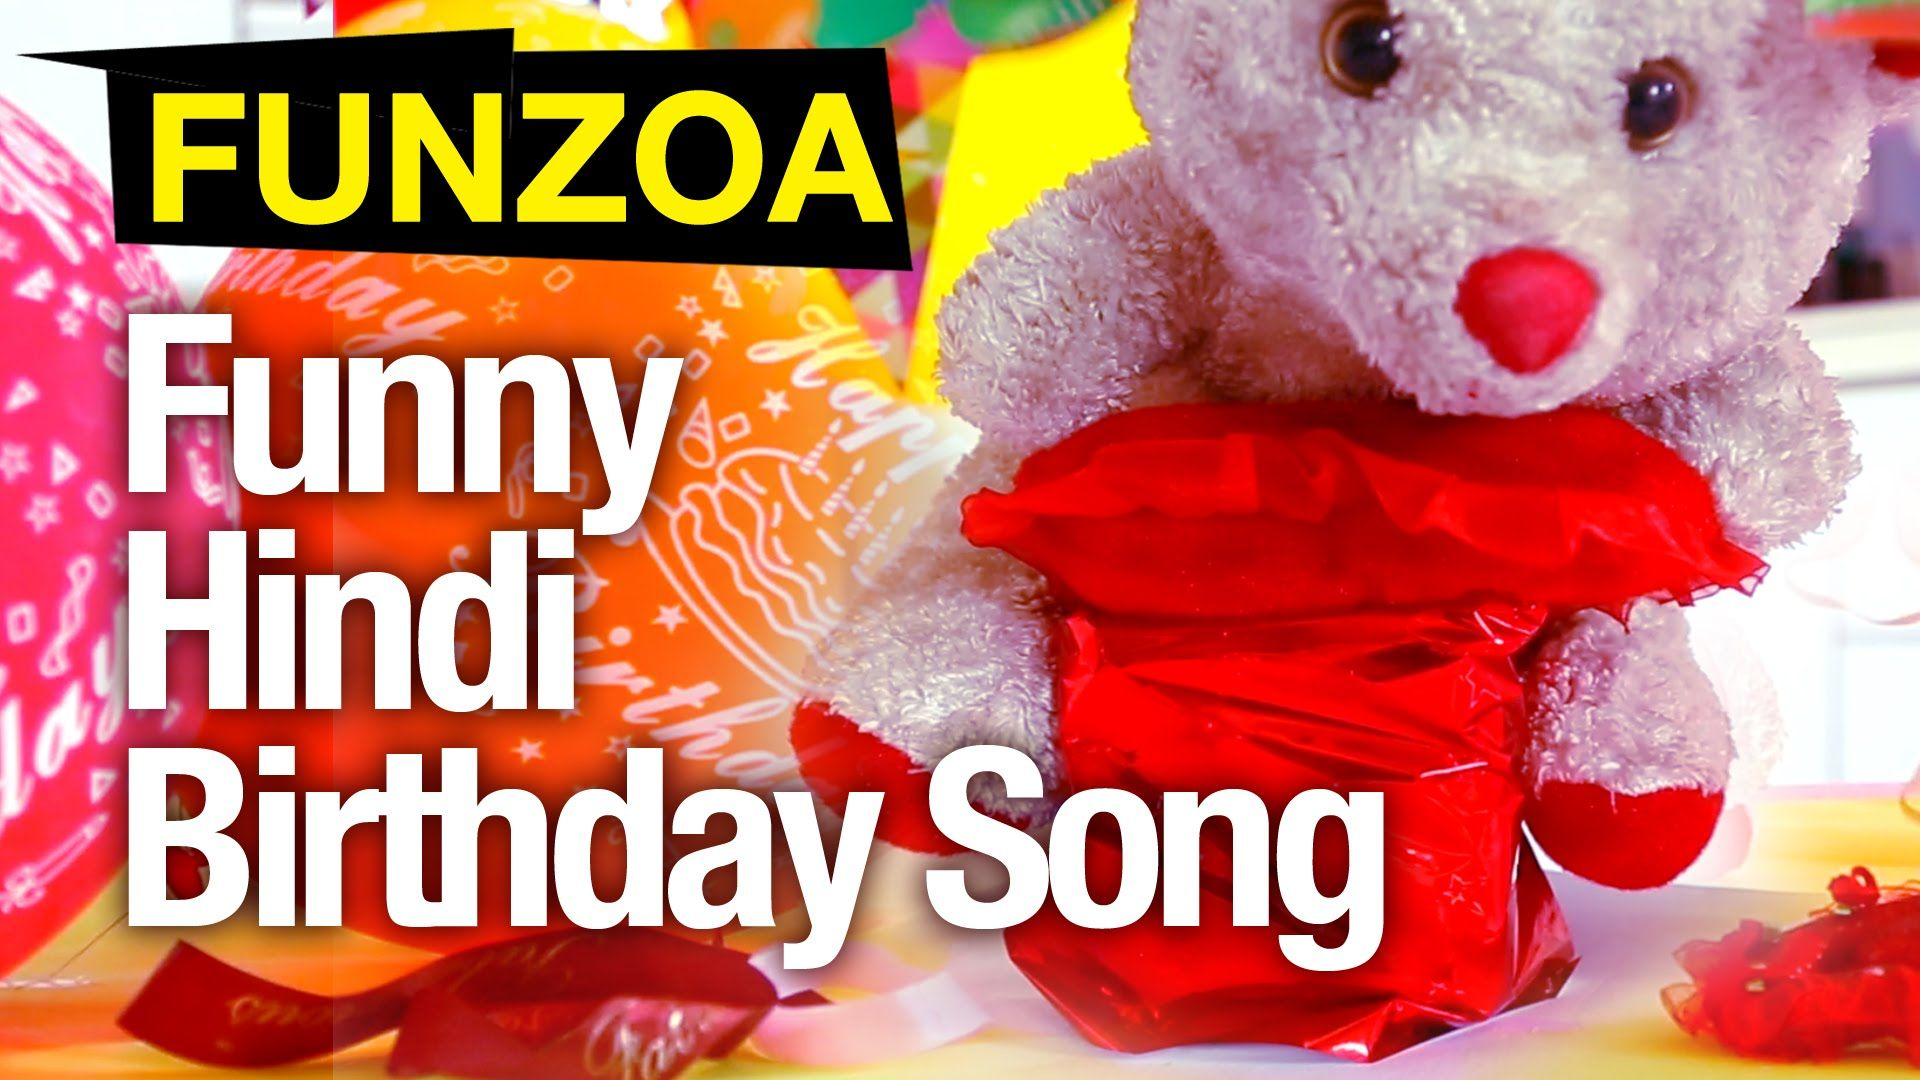 Funny Hindi Birthday Song Funzoa Mimi Teddy My Styles Birthday